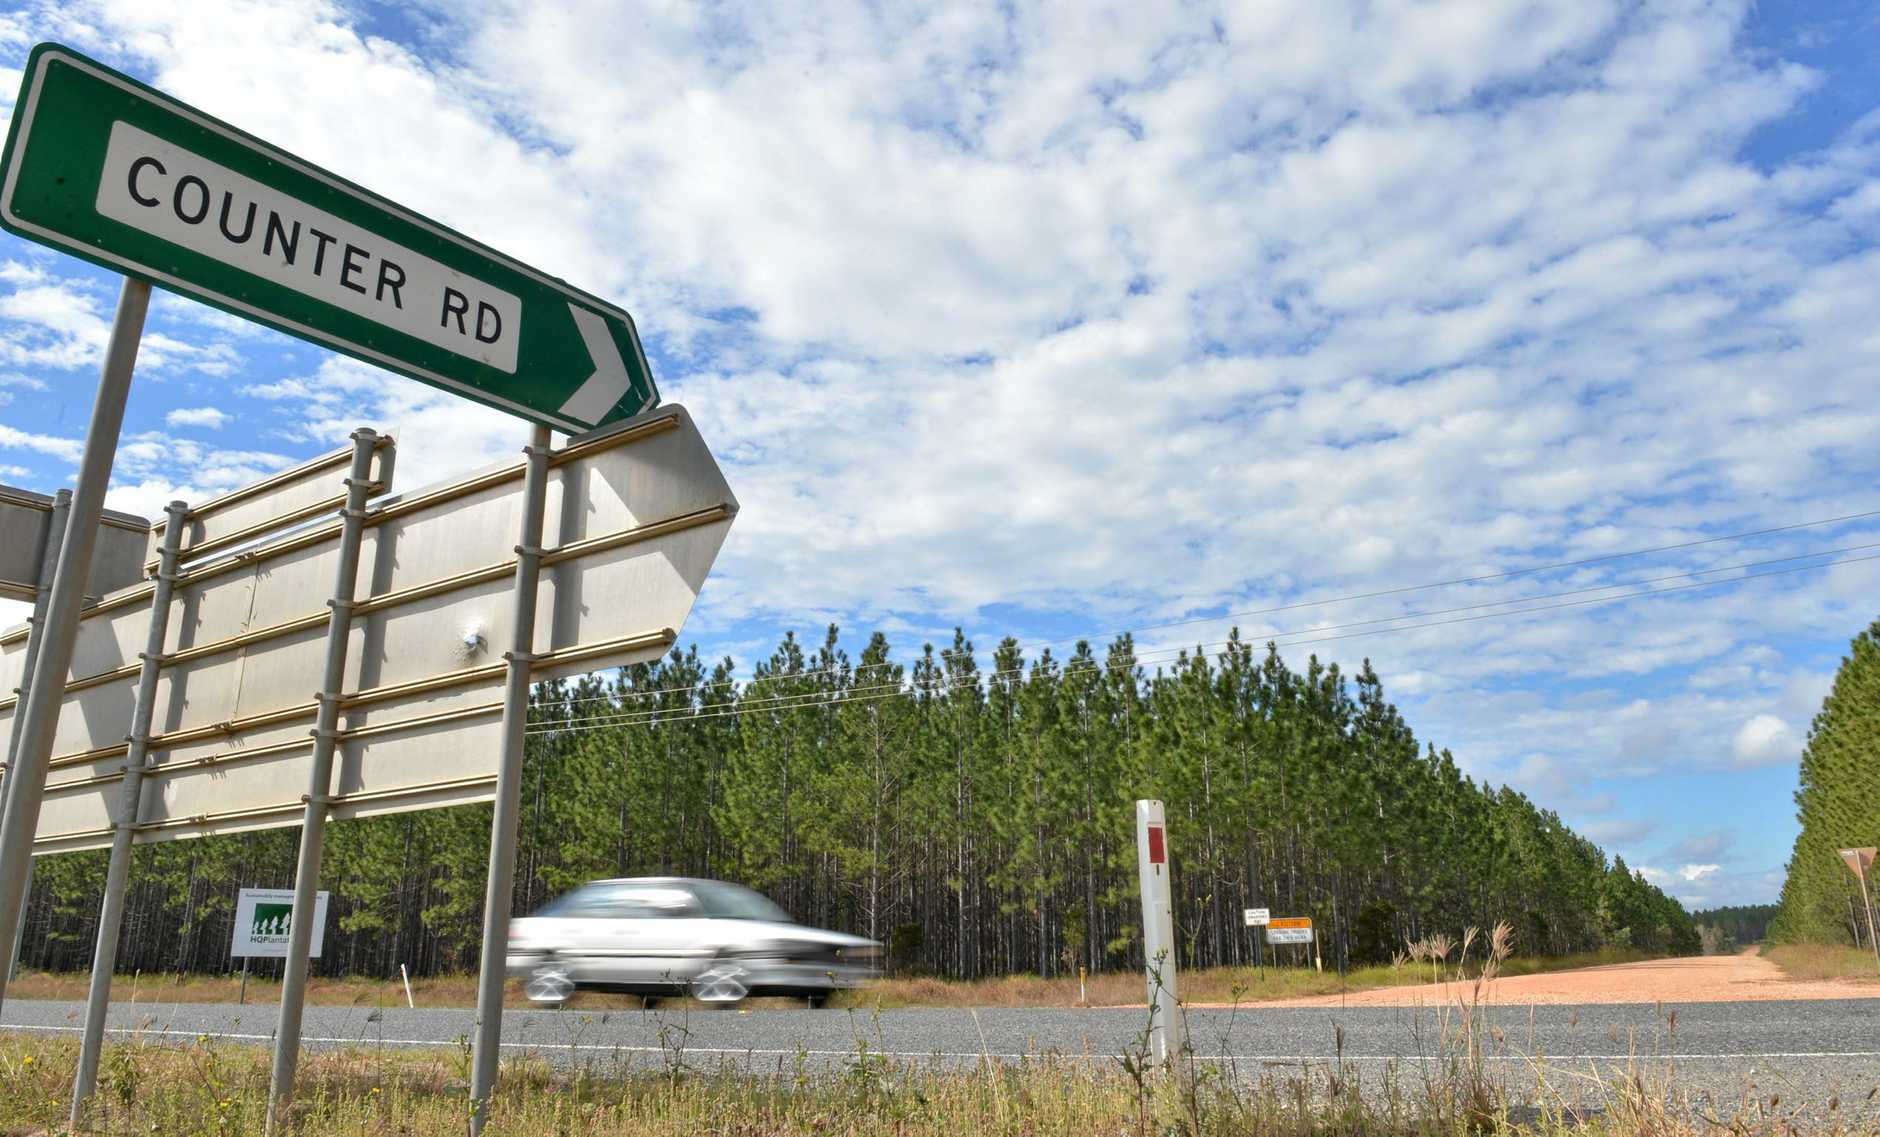 Counter rd intersection. Photo PatricK Woods / The Gympie Times